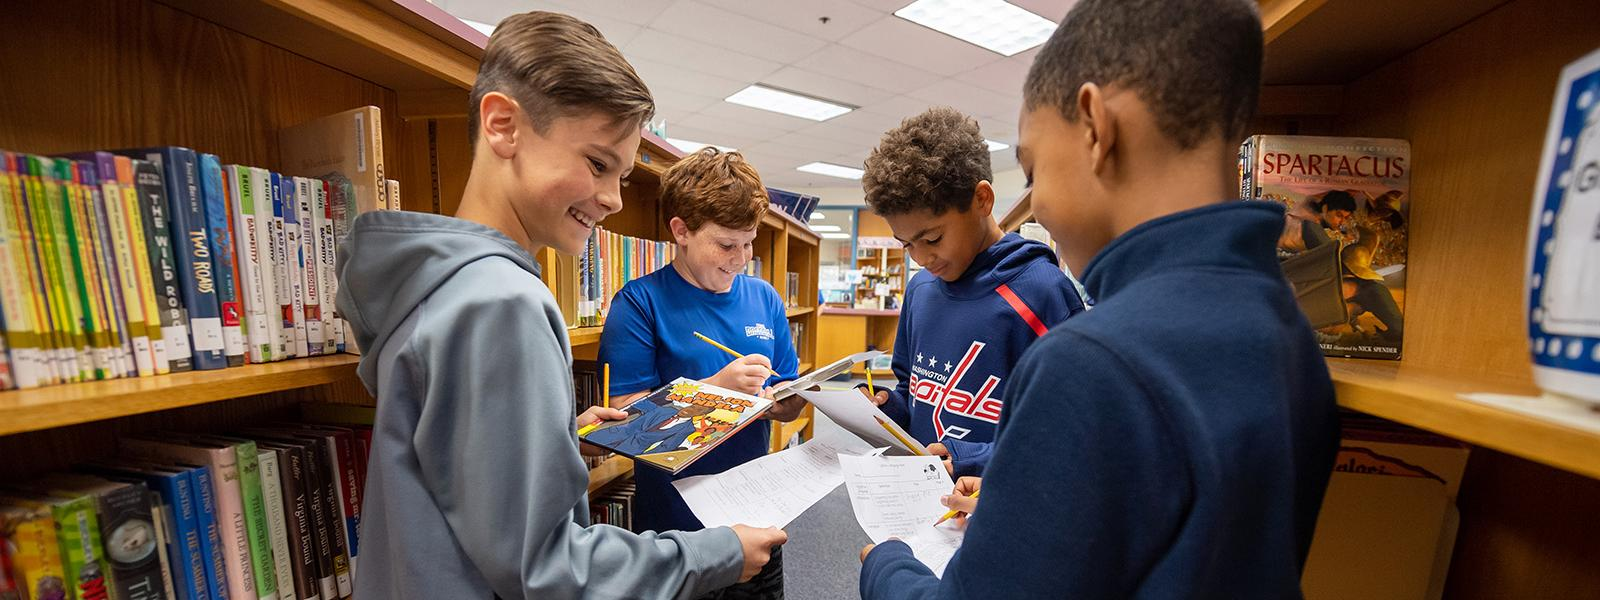 These Sangster Elementary School classmates exhibit communication and collaboration skills—attributes of Portrait of a Graduate—while working on an assignment in the library.